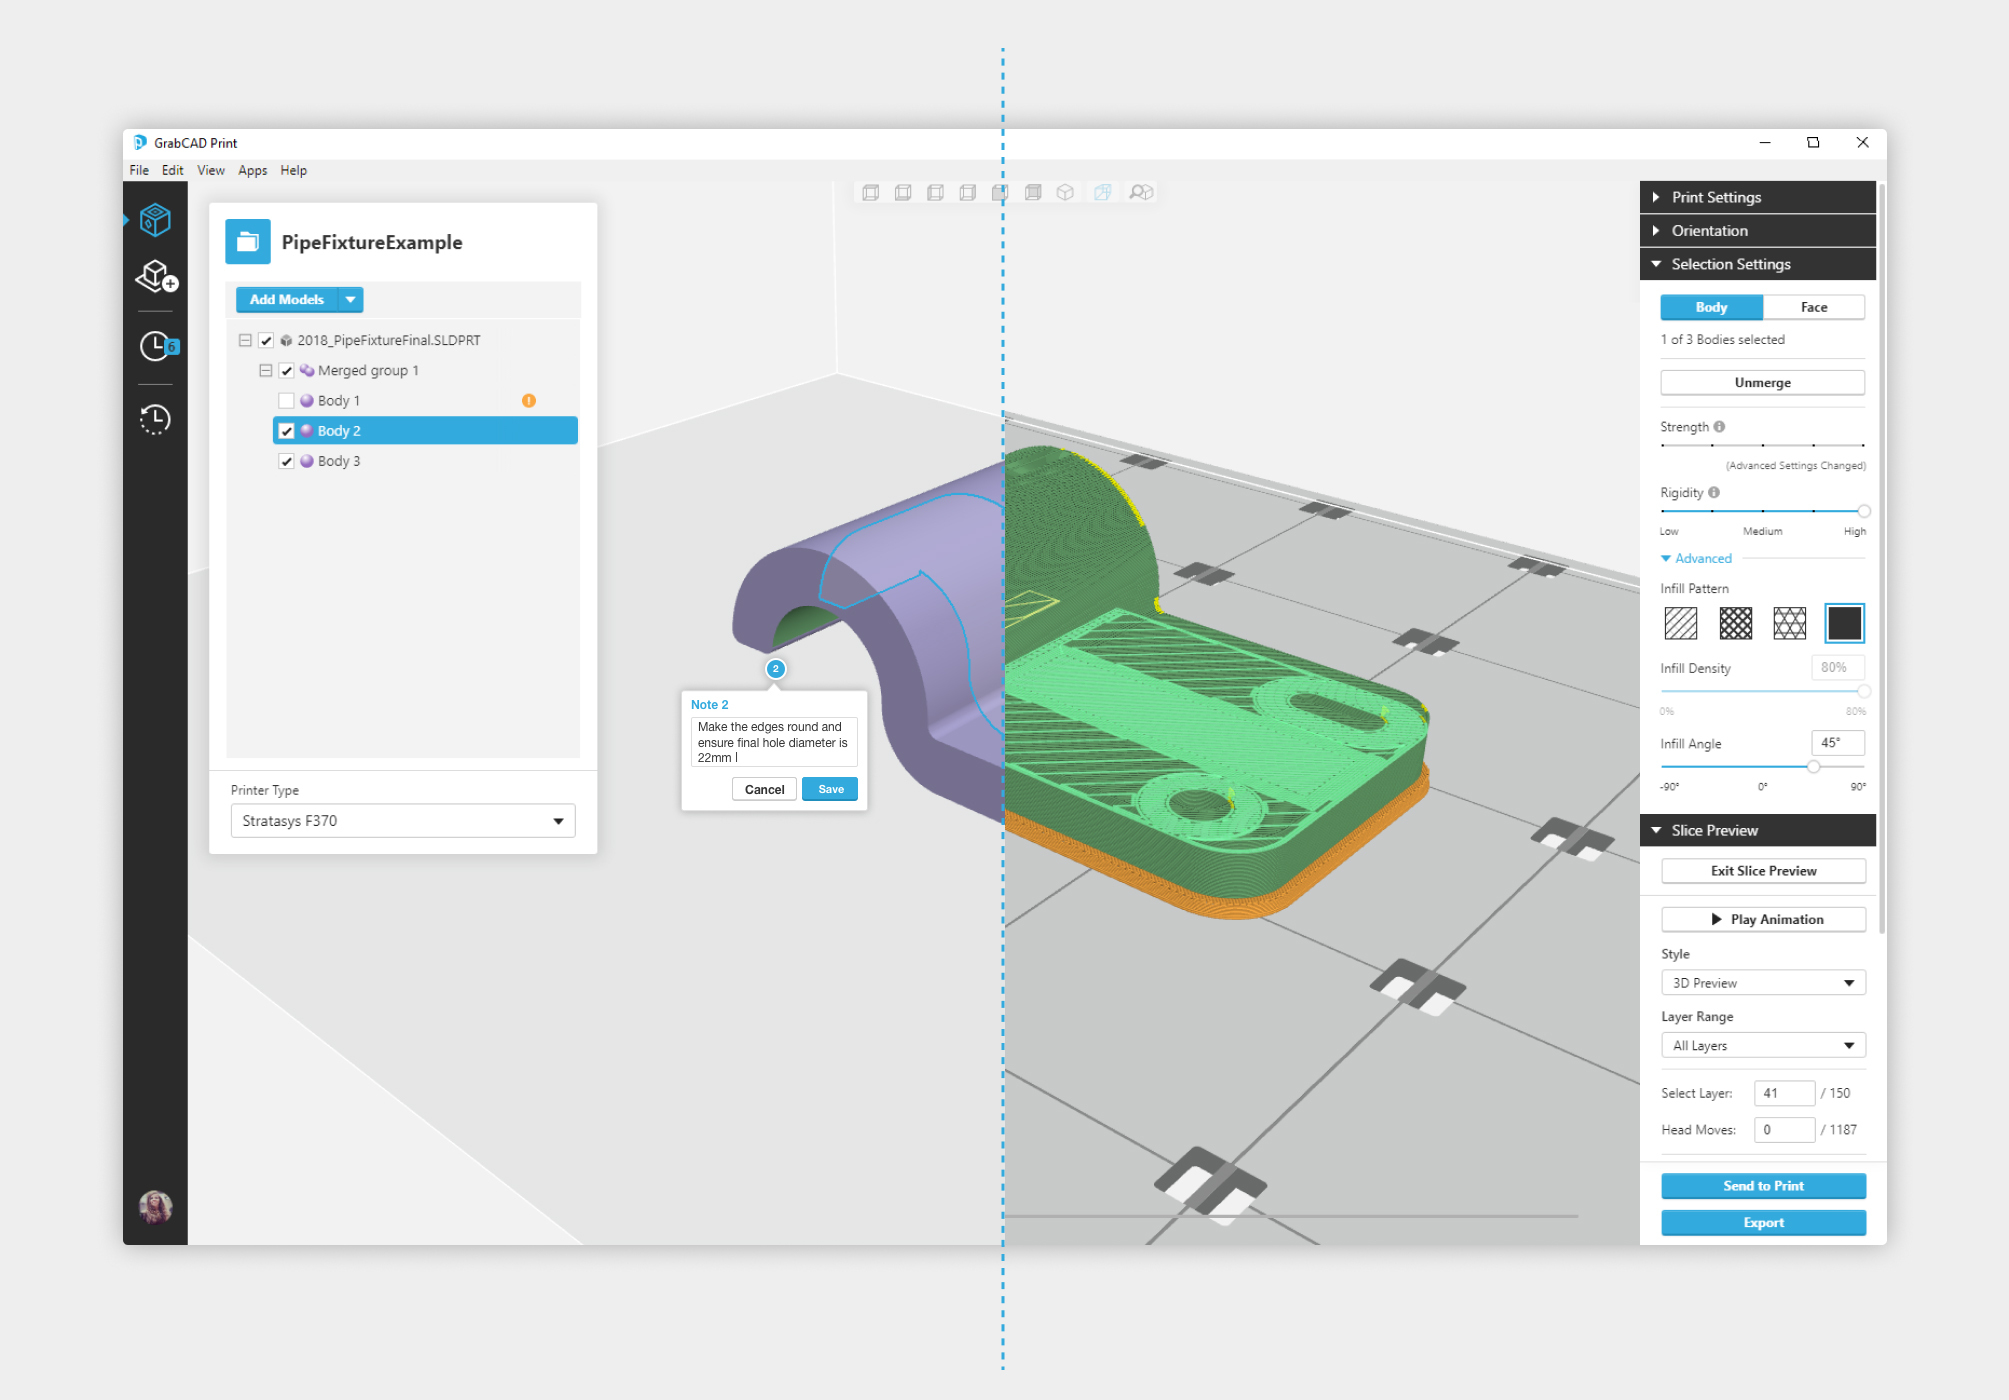 GrabCAD Print Advanced FDM for creating machine toolpath. Image via GrabCAD.